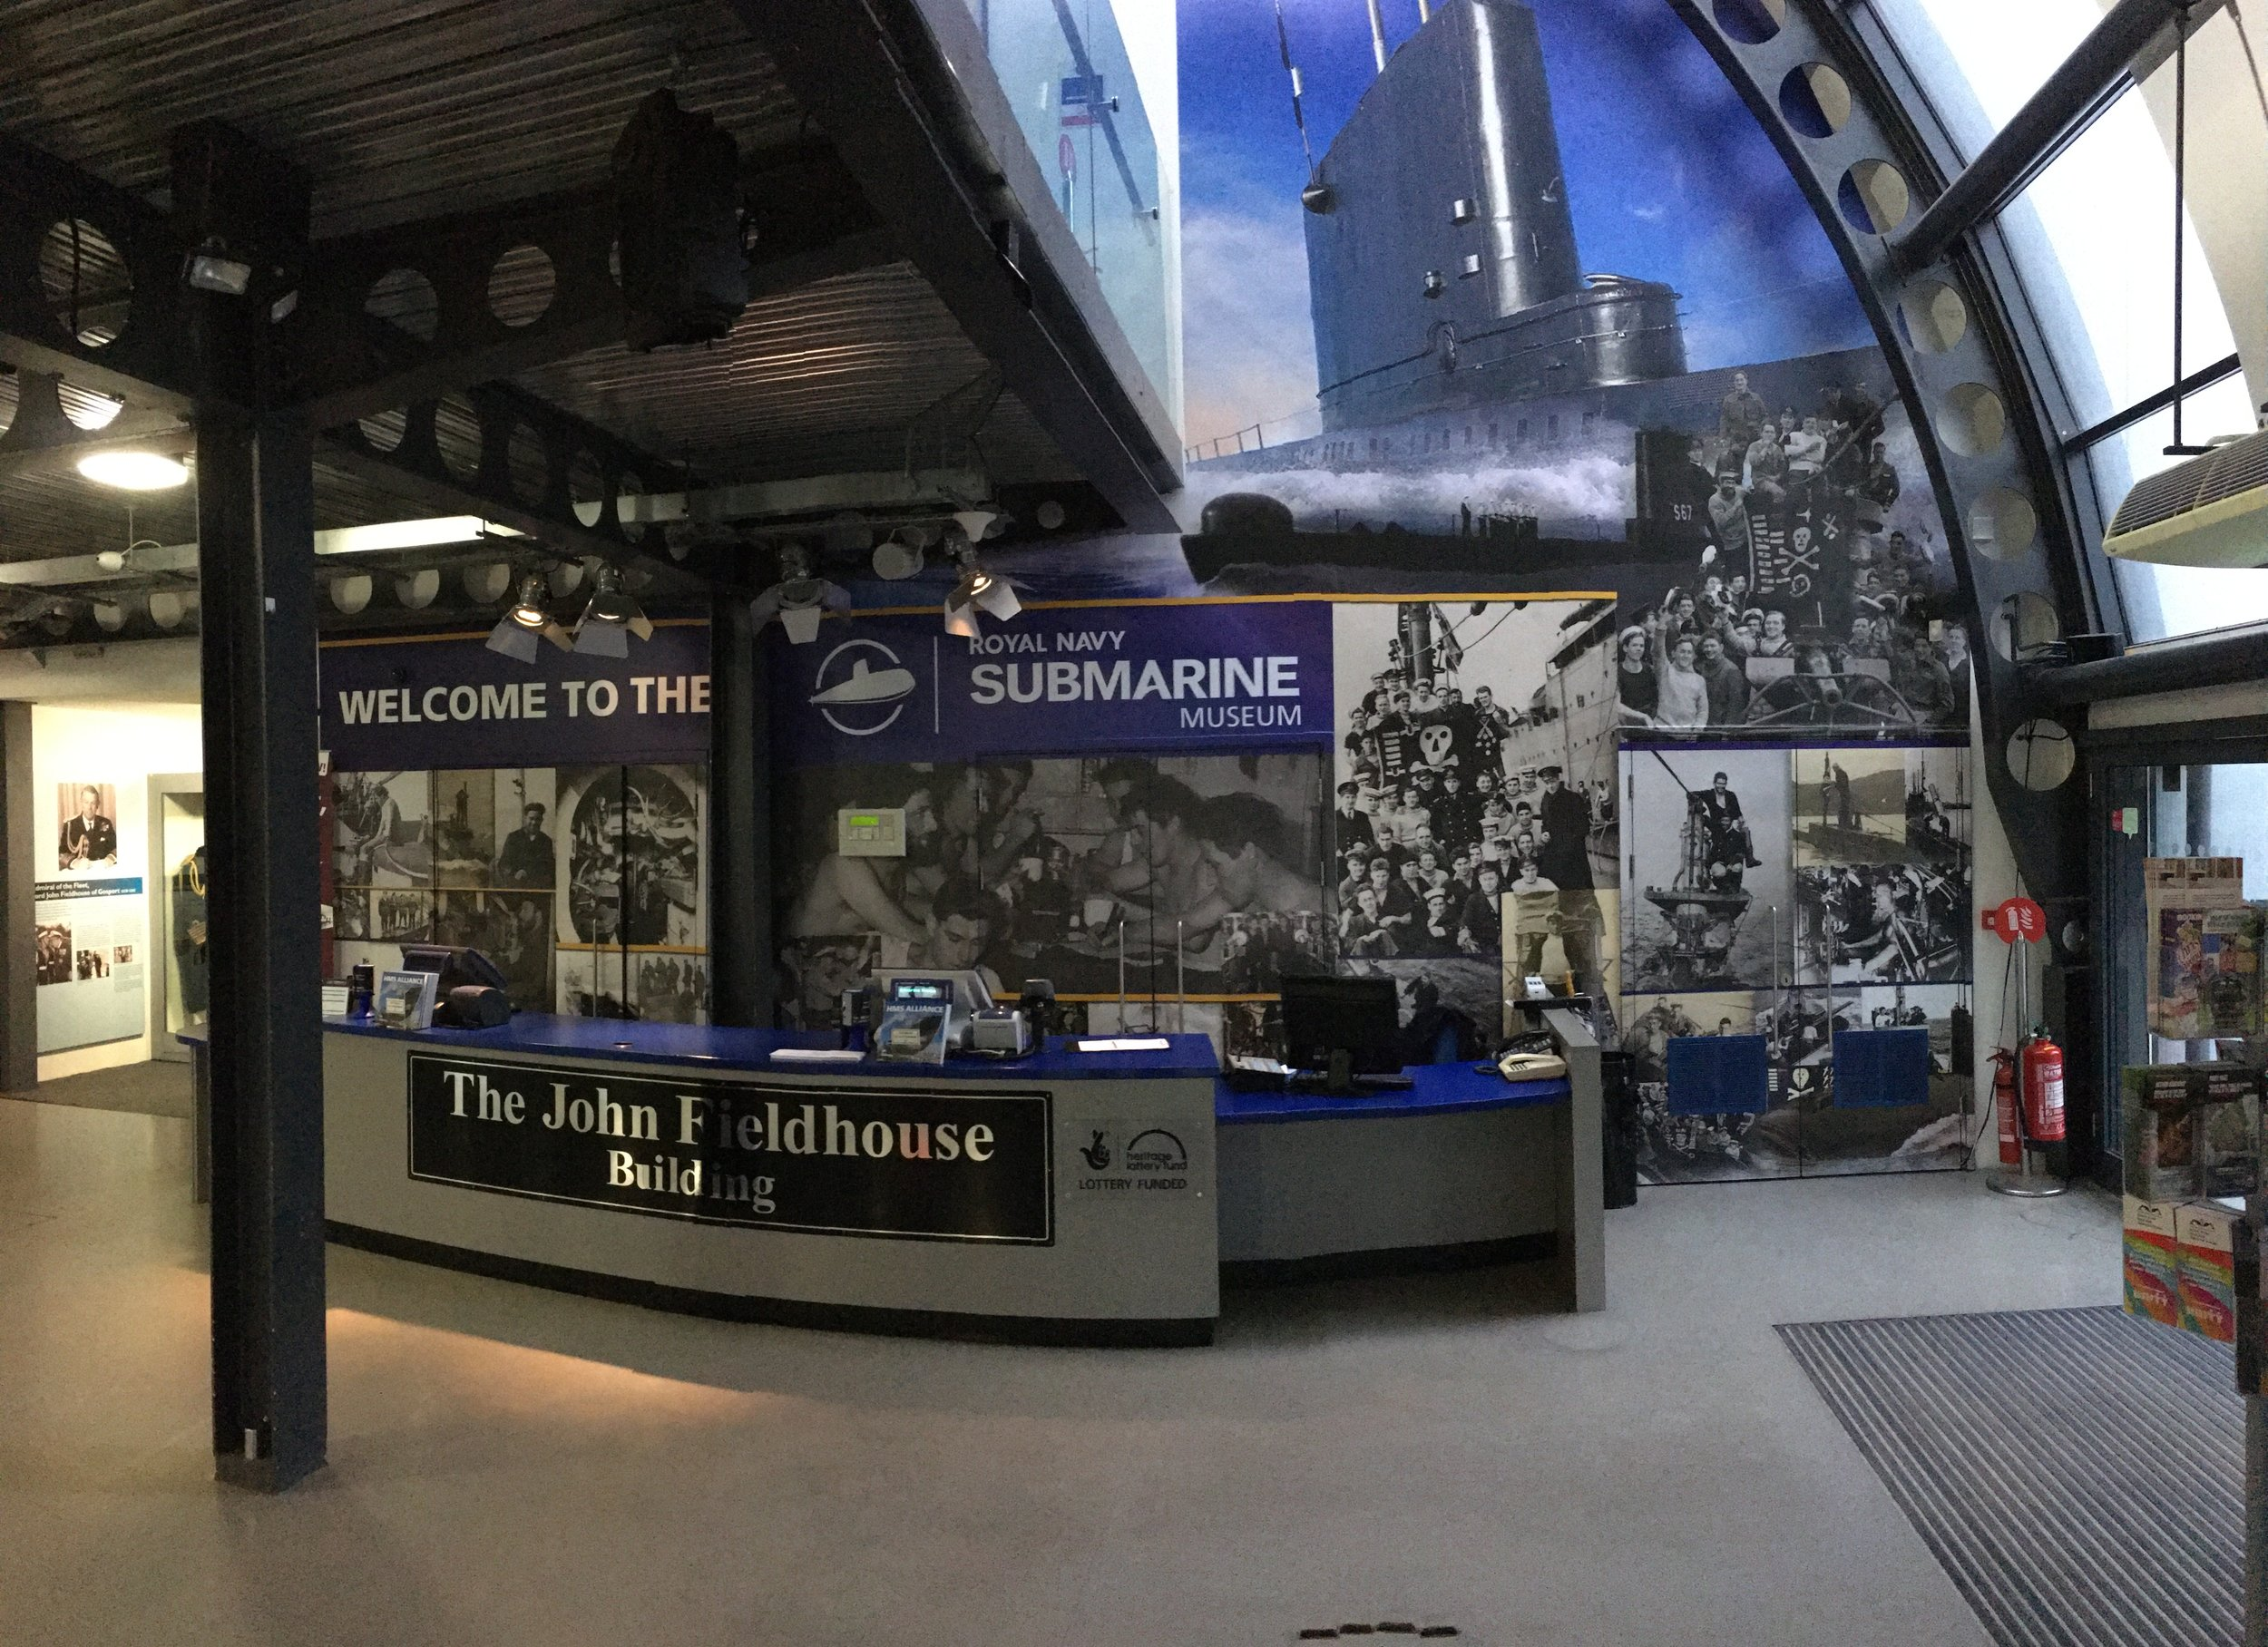 The Royal Navy Submarine Museum Ticket Office Wall Graphic